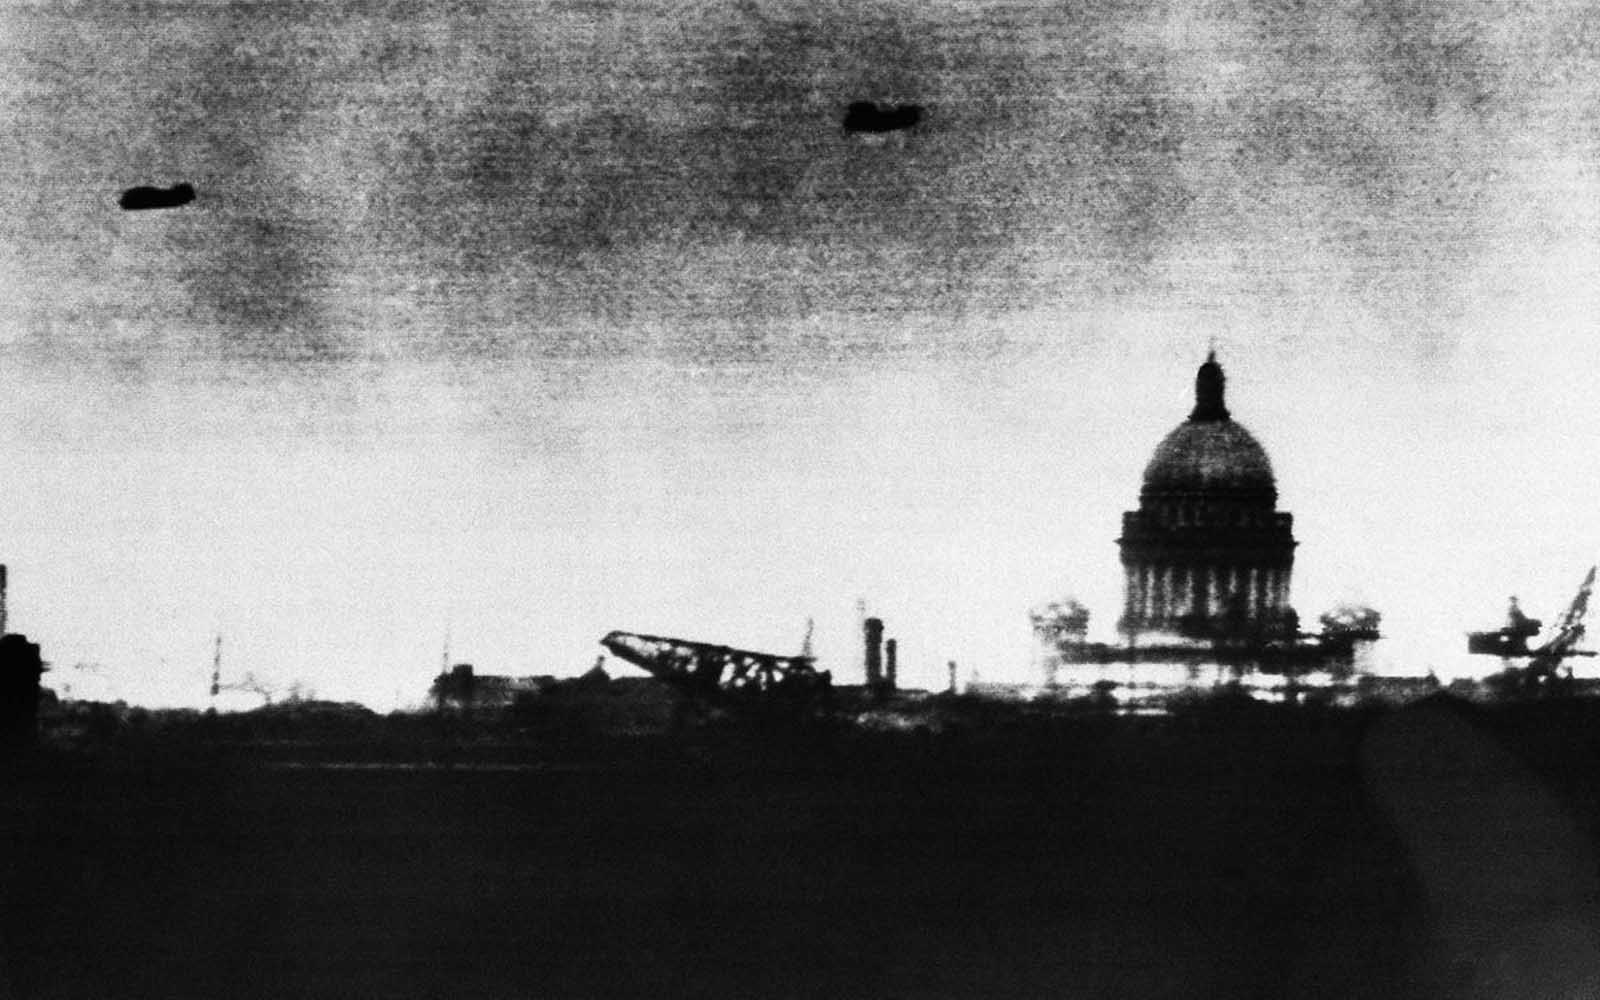 German officials claimed that this photo was a long-distance camera view of Leningrad, taken from the Germans' seige lines, on October 1, 1941, the dark shapes in the sky were identified as Soviet aircraft on patrol, but were more likely barrage balloons. This would mark the furthest advance into the city for the Germans, who laid seige to Leningrad for more than two more years, but were unable to fully capture the city.